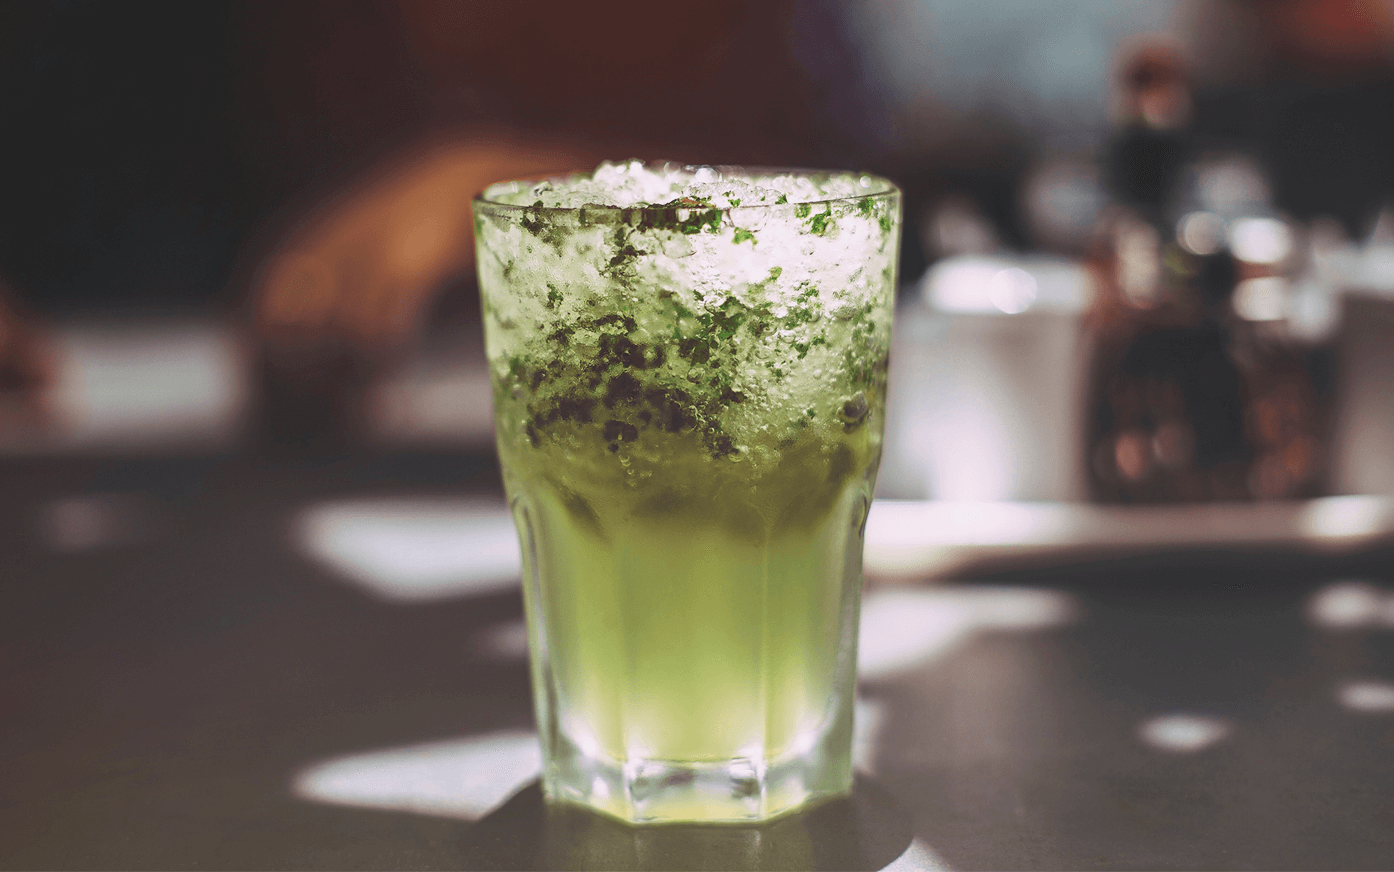 Ghoulish Halloween Cocktails for Grown-Ups